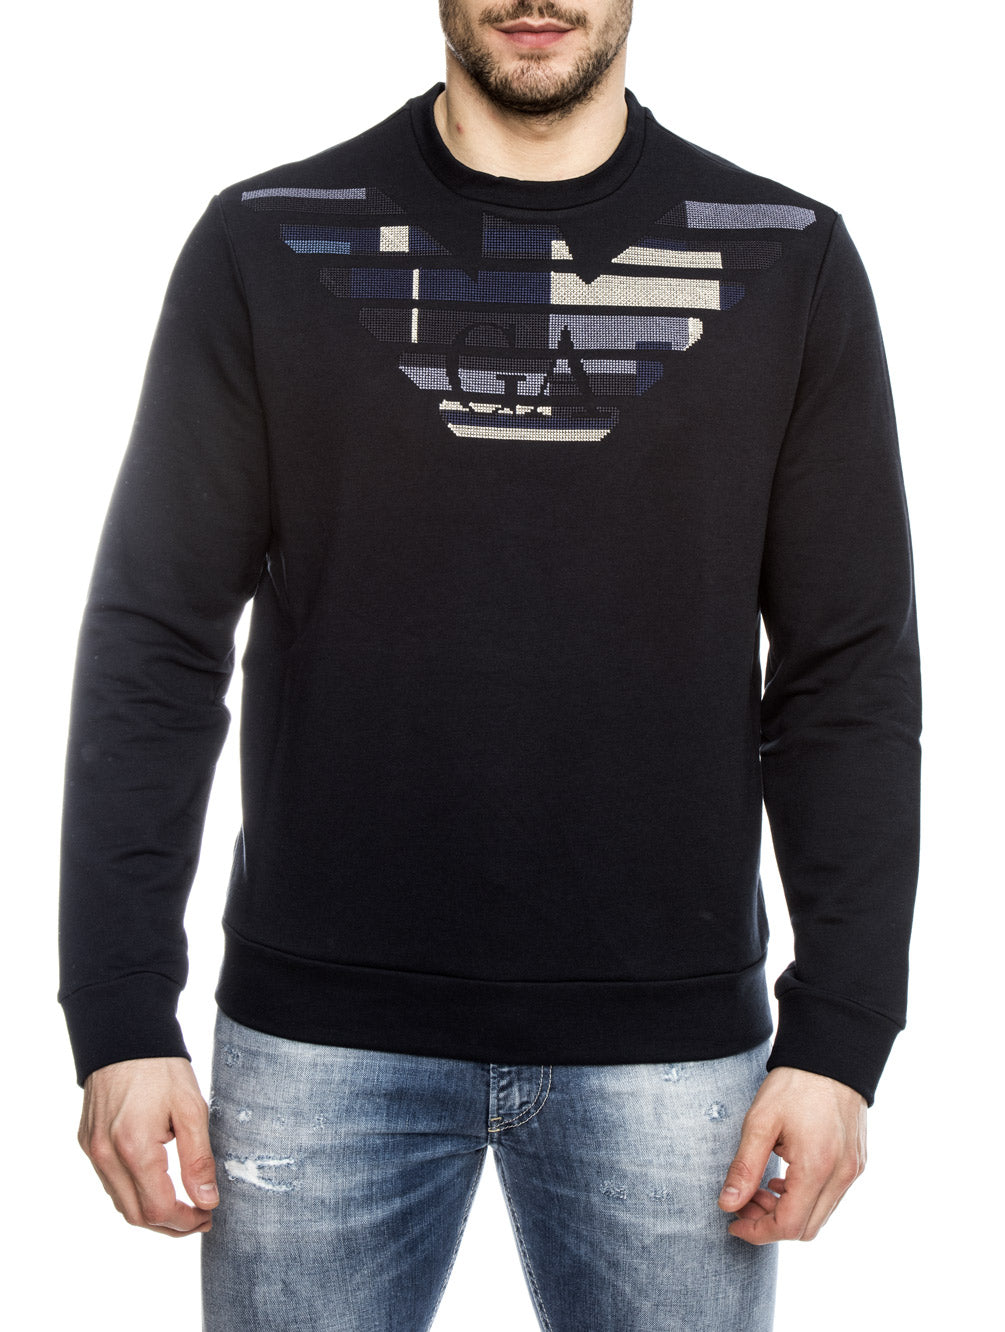 MAN JERSEY SWEATER IN BLUE NAVY